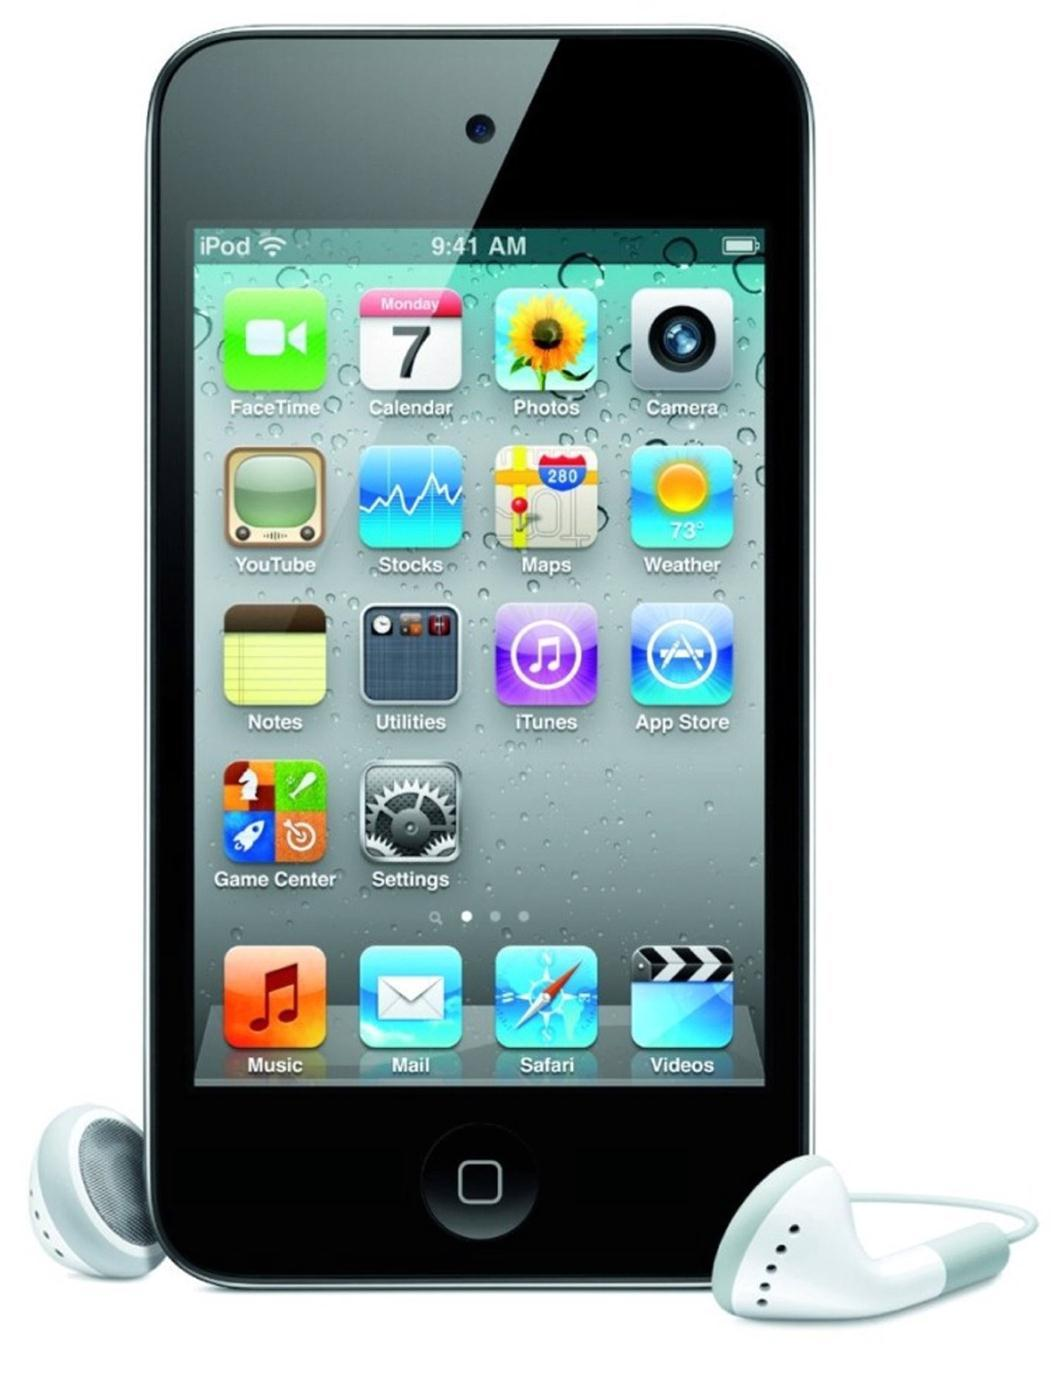 Apple iPod Touch 4 (3.5 inch) Multi-Touch Display 8GB WLAN Bluetooth Camera (Black)